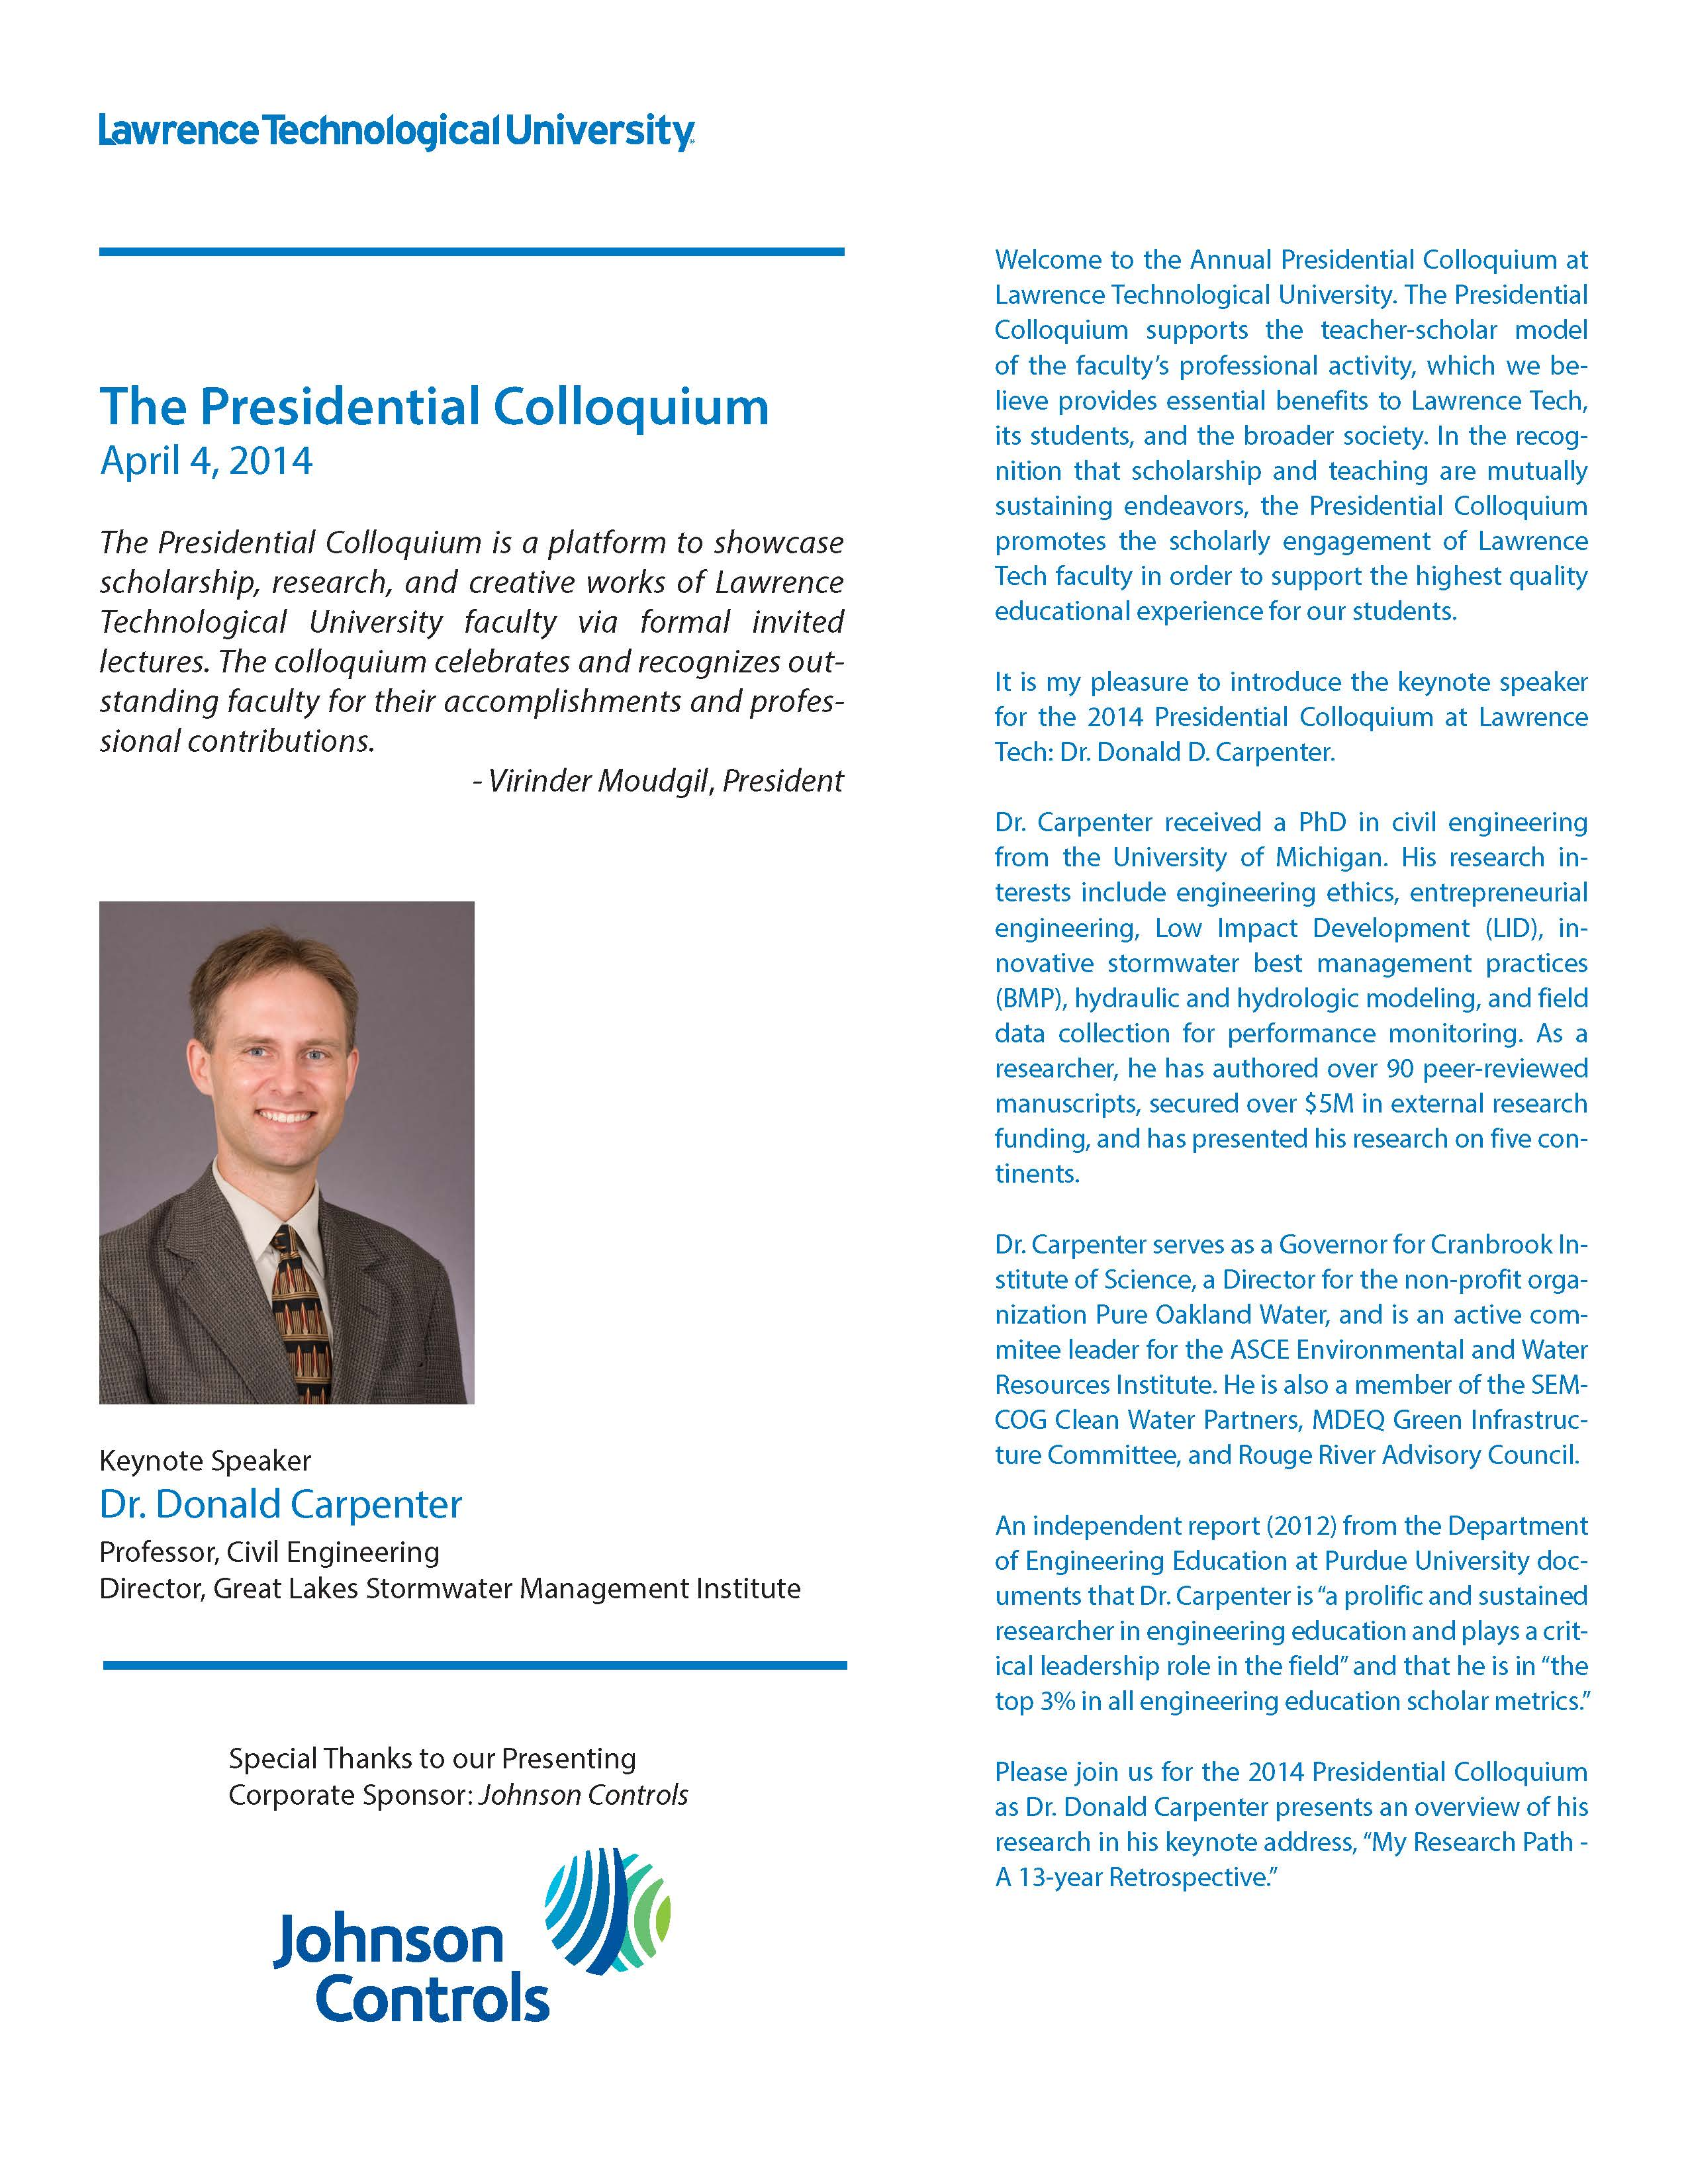 2nd Annual Presidential Colloquium flyer